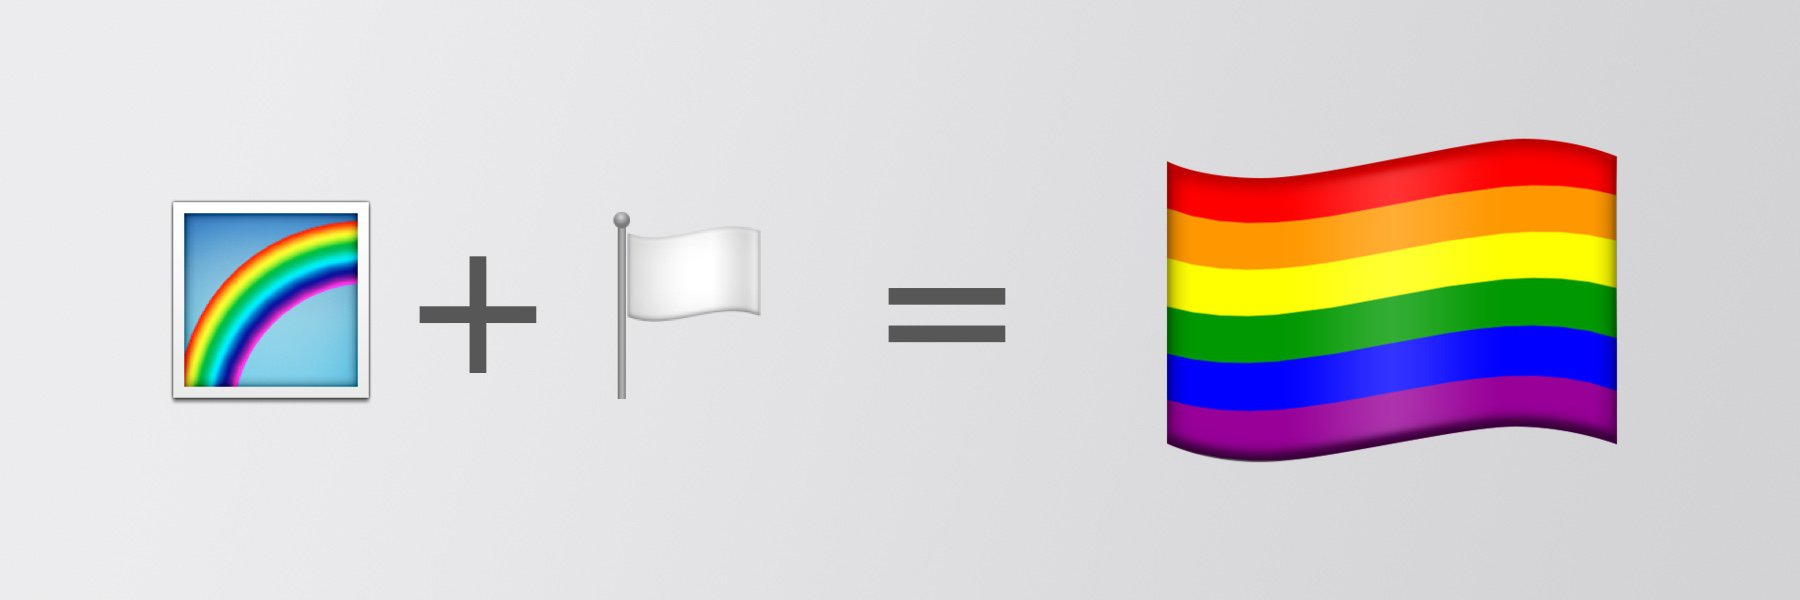 🏳 🌈 Rainbow Flag Emoji Details Published